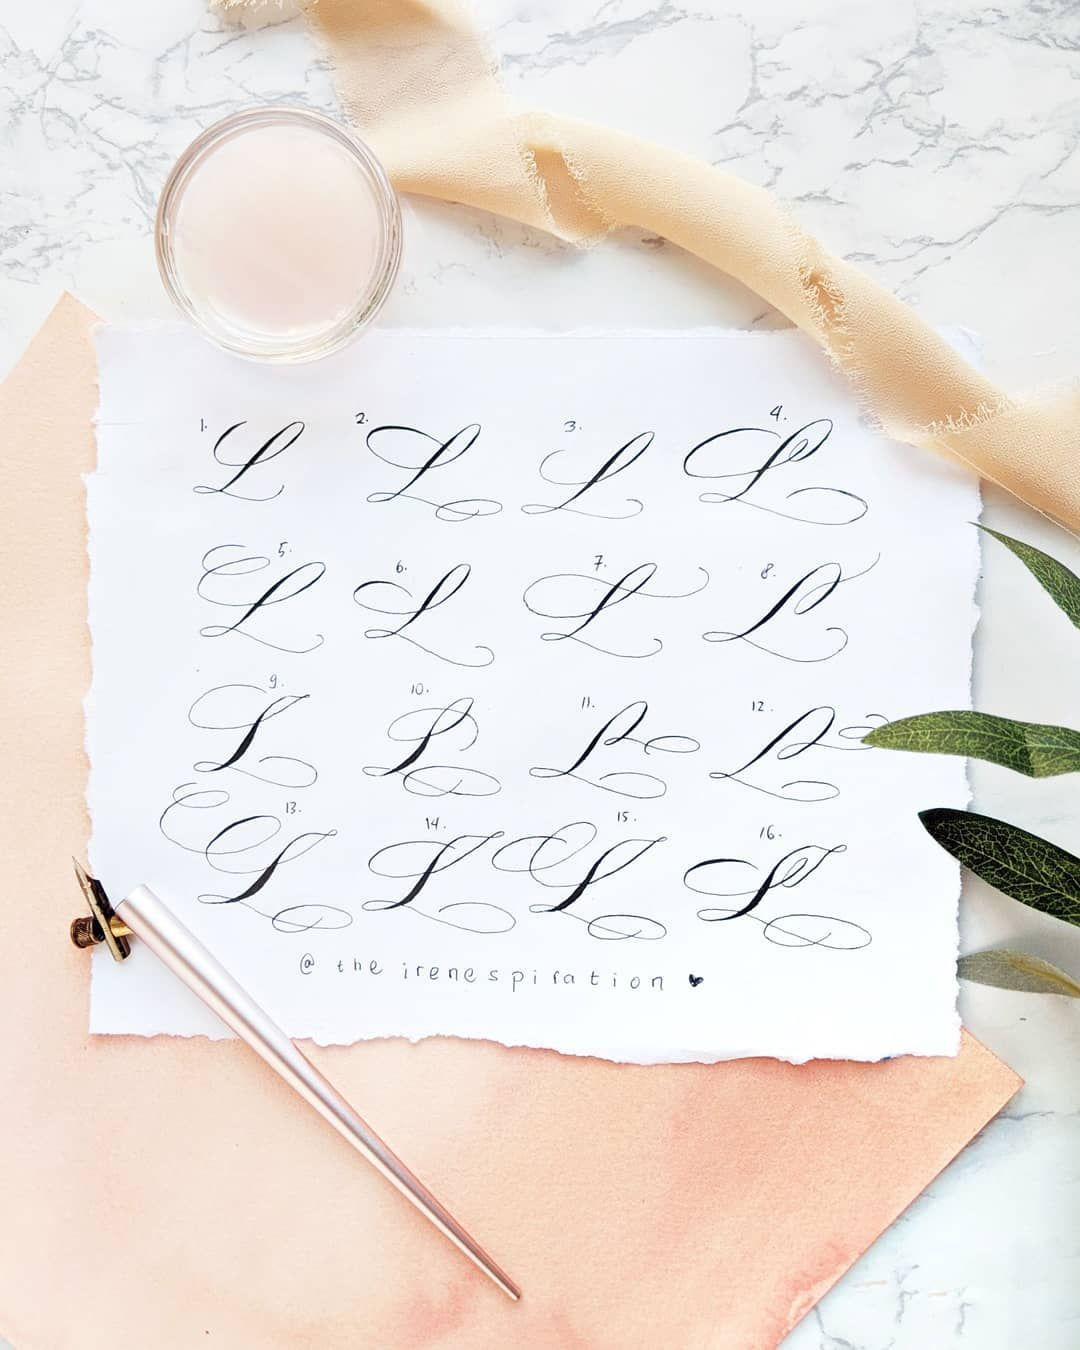 Irene Bay Area Calligrapher On Instagram Yay 16 Types Of Uppercase L Flourishing Are Here The Hand Lettering Alphabet Hand Lettering Art Hand Lettering